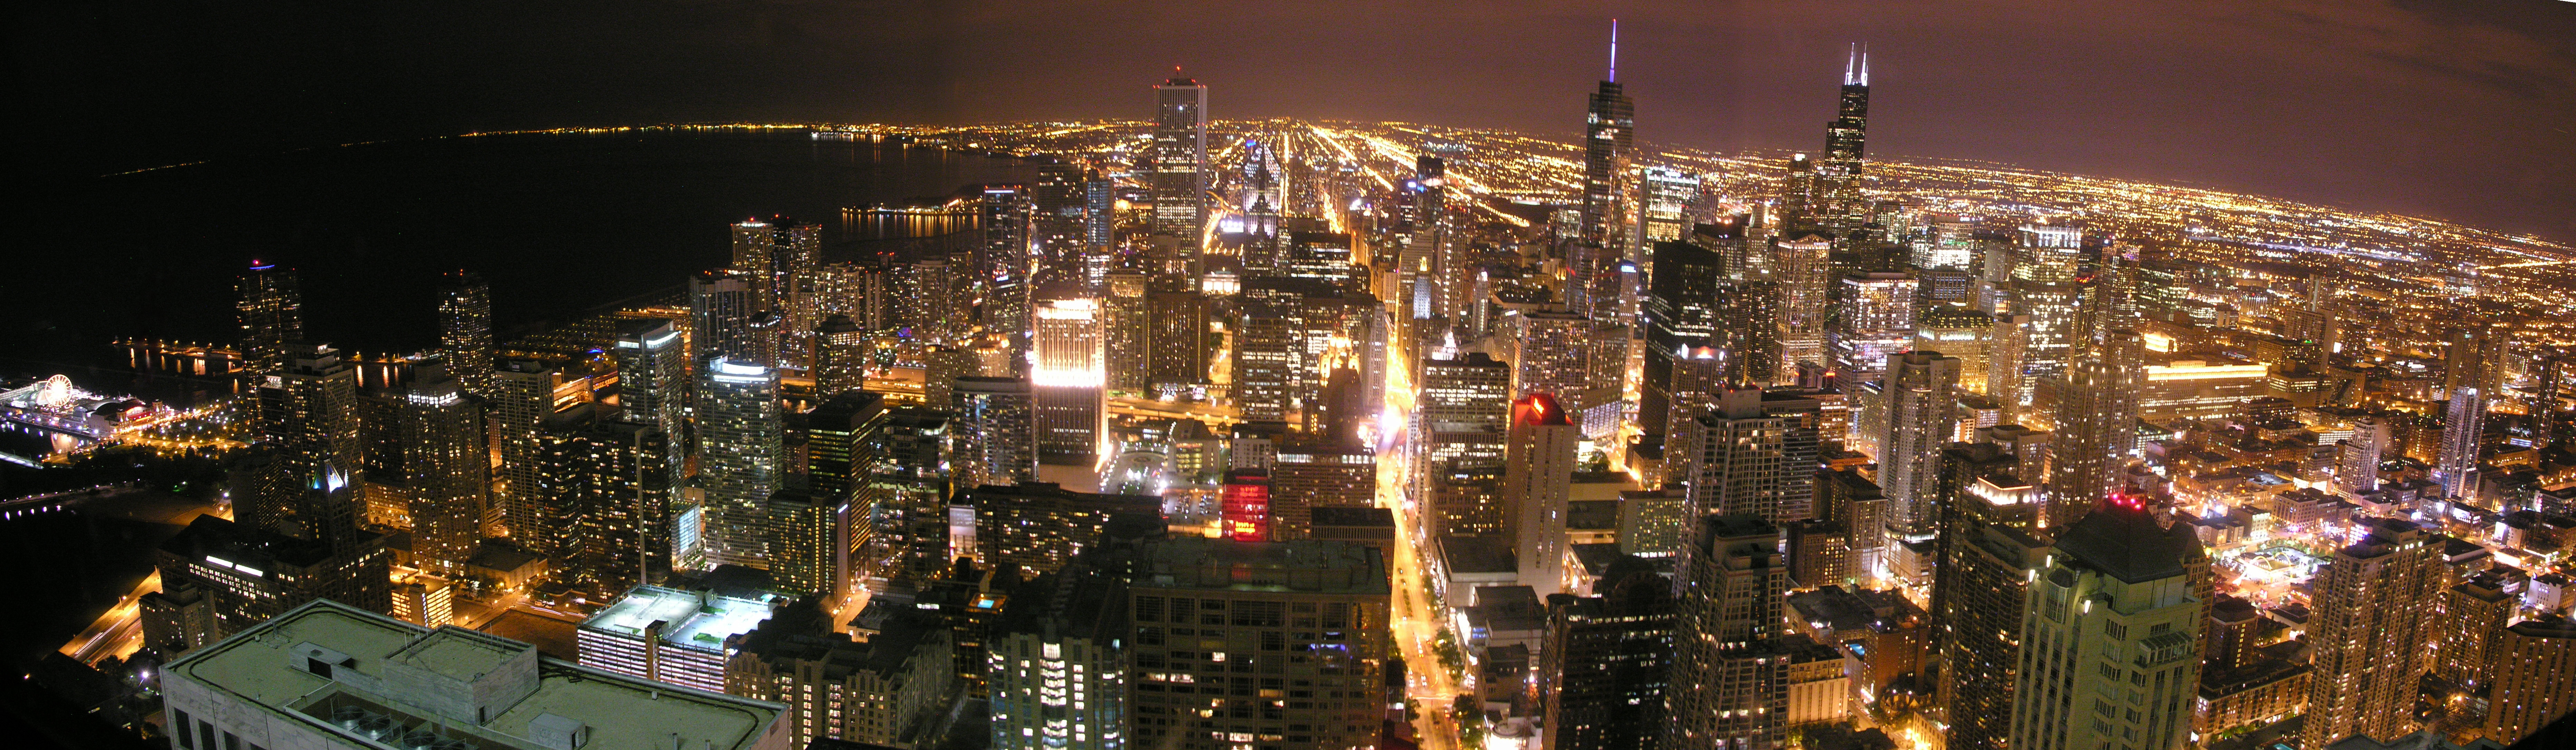 chicago windy city wallpapers - photo #19